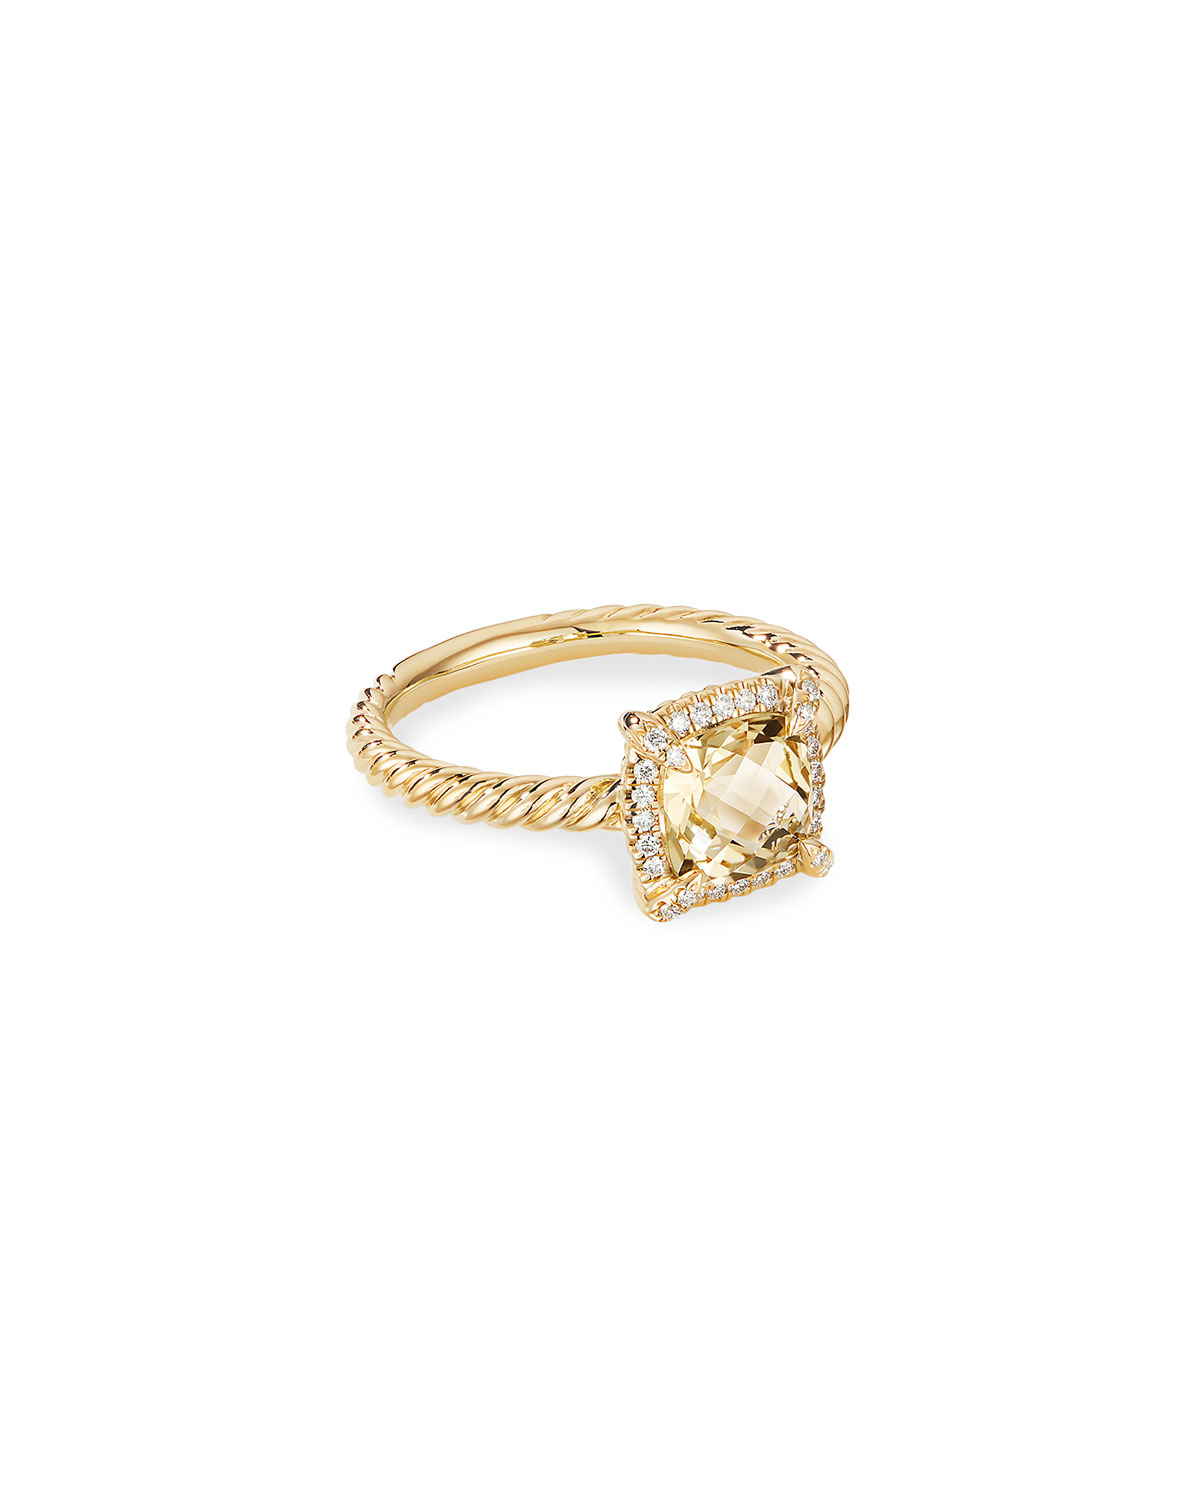 David Yurman Petite Chatelaine Pave Bezel Ring in 18K Gold with Champagne Citrine, Size 6